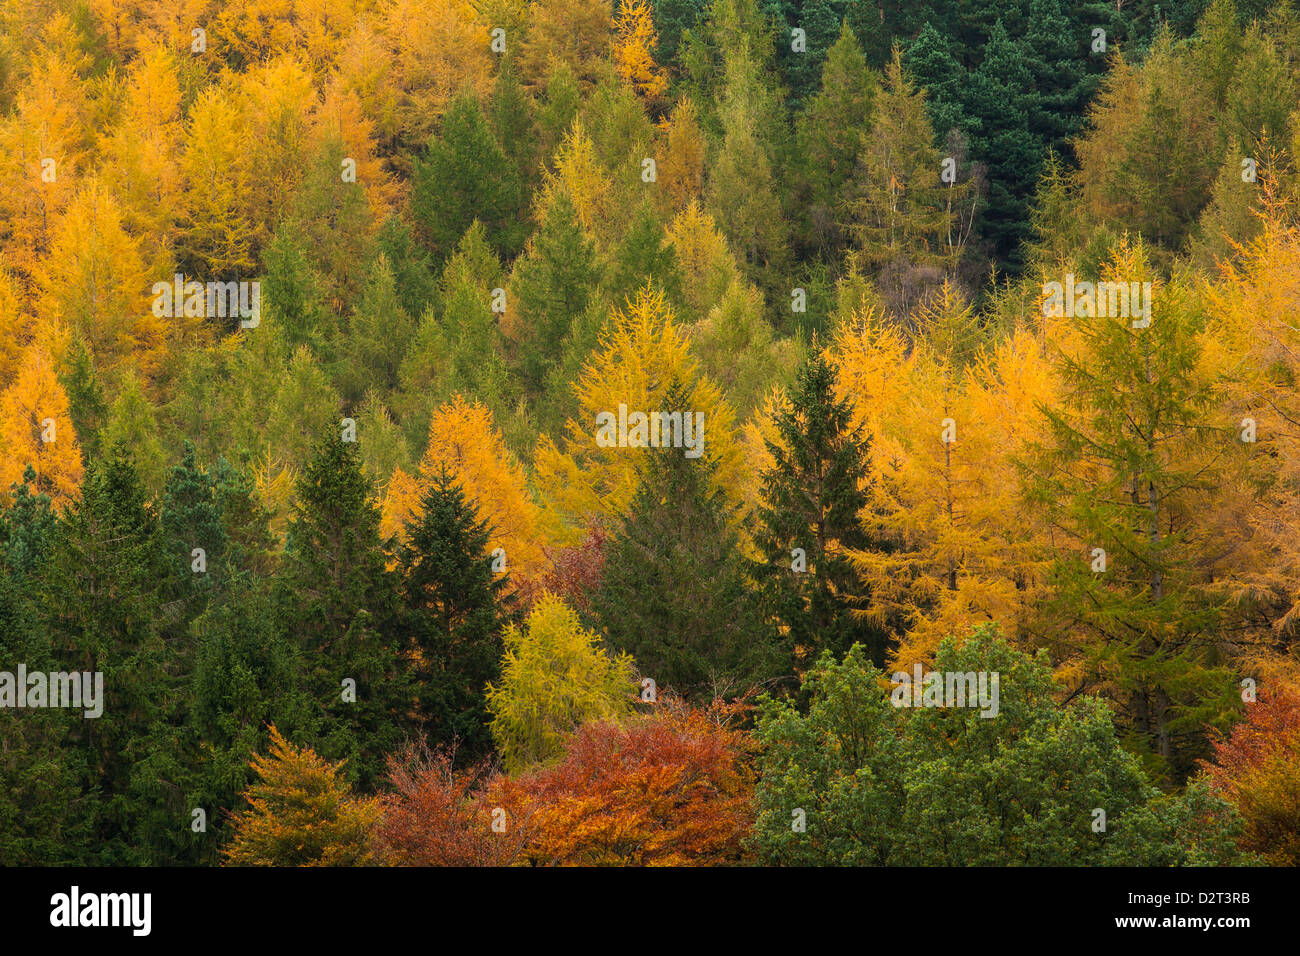 Variety of coniferous tree colours in autumn, Lake District National Park, Cumbria, England, United Kingdom, Europe - Stock Image